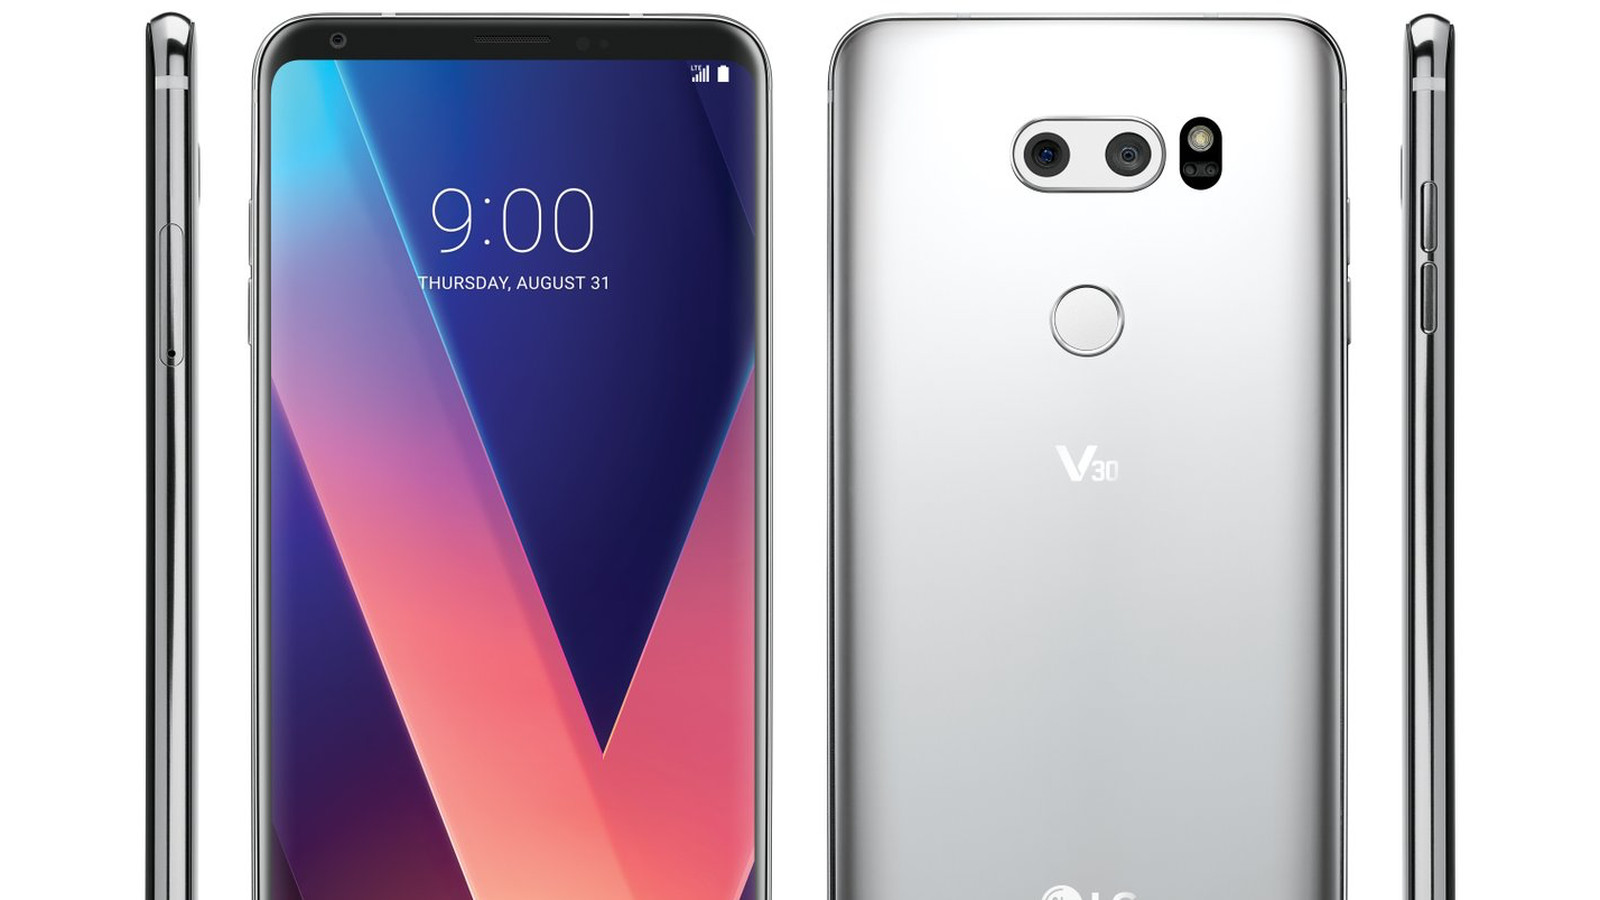 theverge.com - LG's V30 looks a little bit awesome